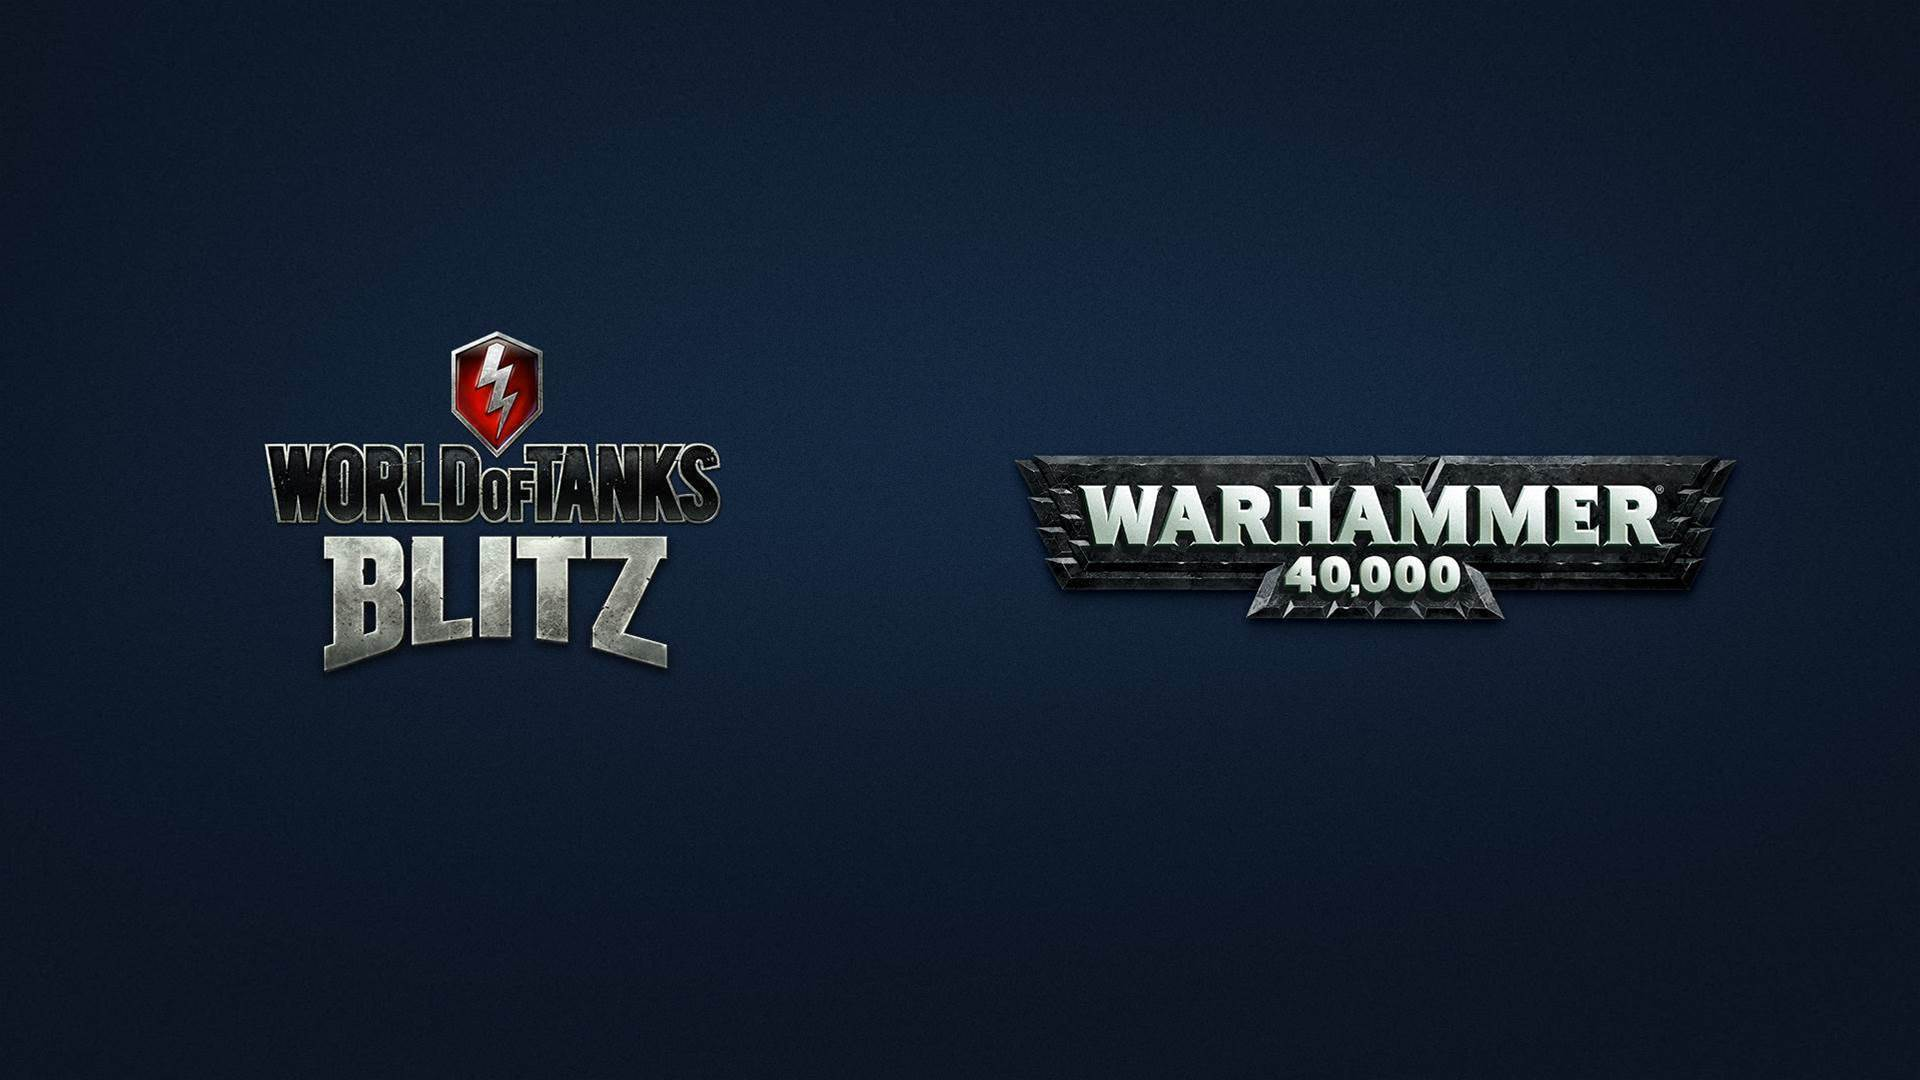 The tanks of Warhammer 40,000 invade World of Tanks Blitz